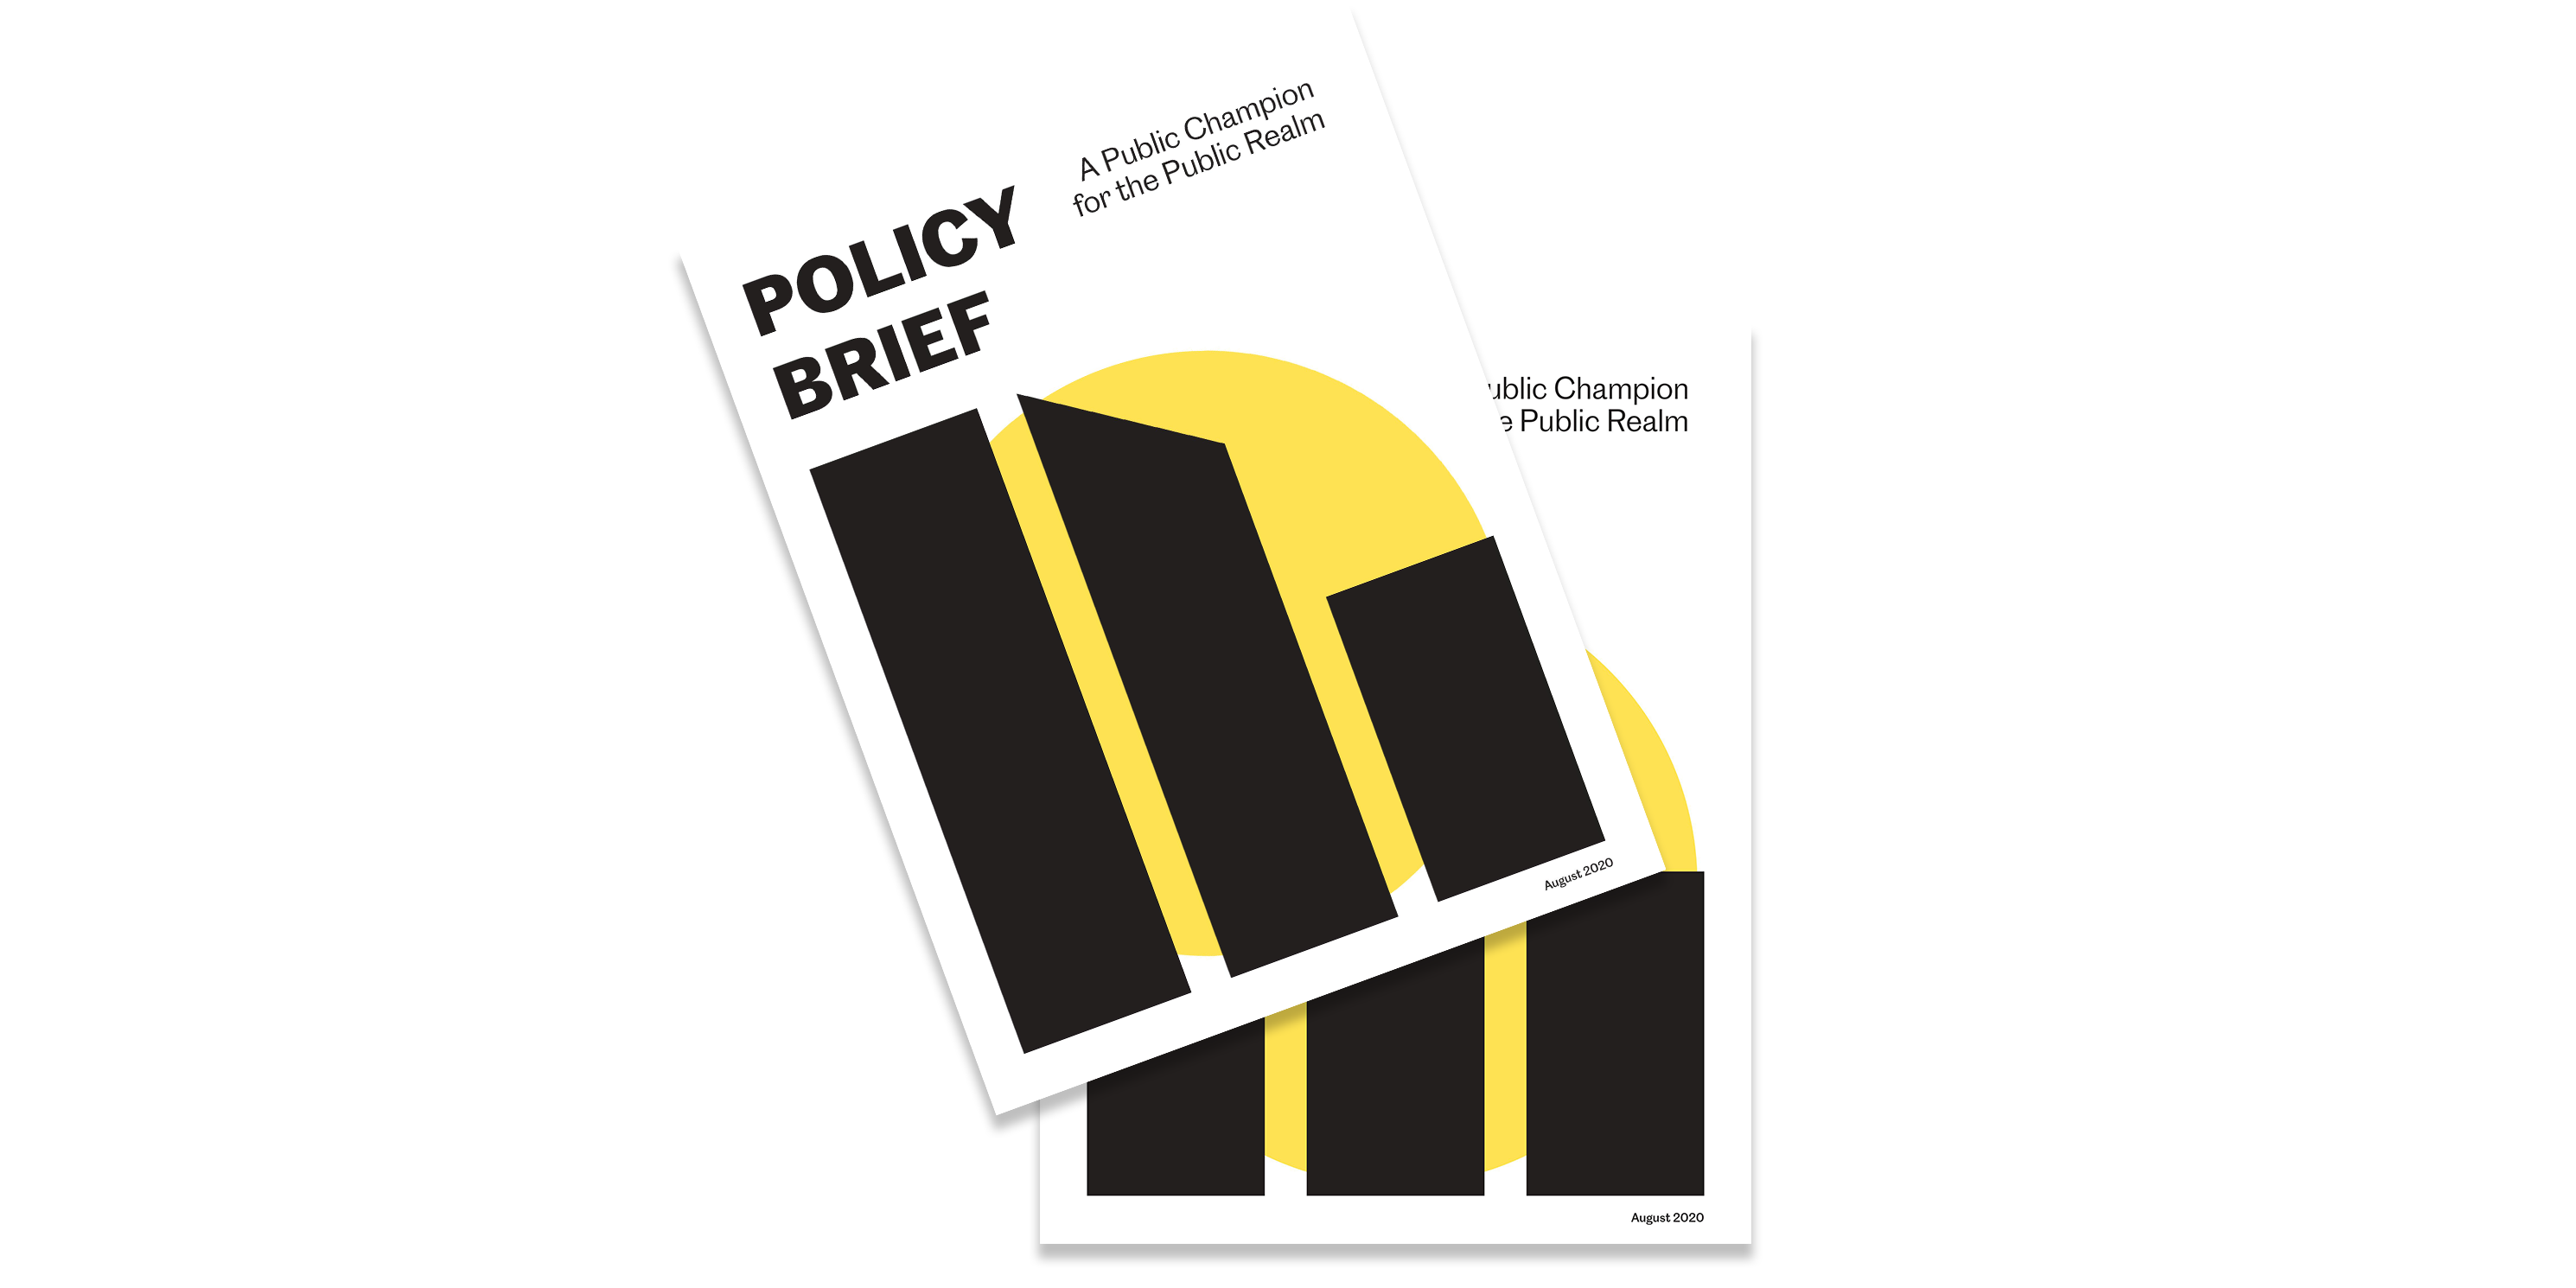 Cover for the Fight for Light policy brief, A Public Champion for the Public Realm, calling for the Director of the Public Realm